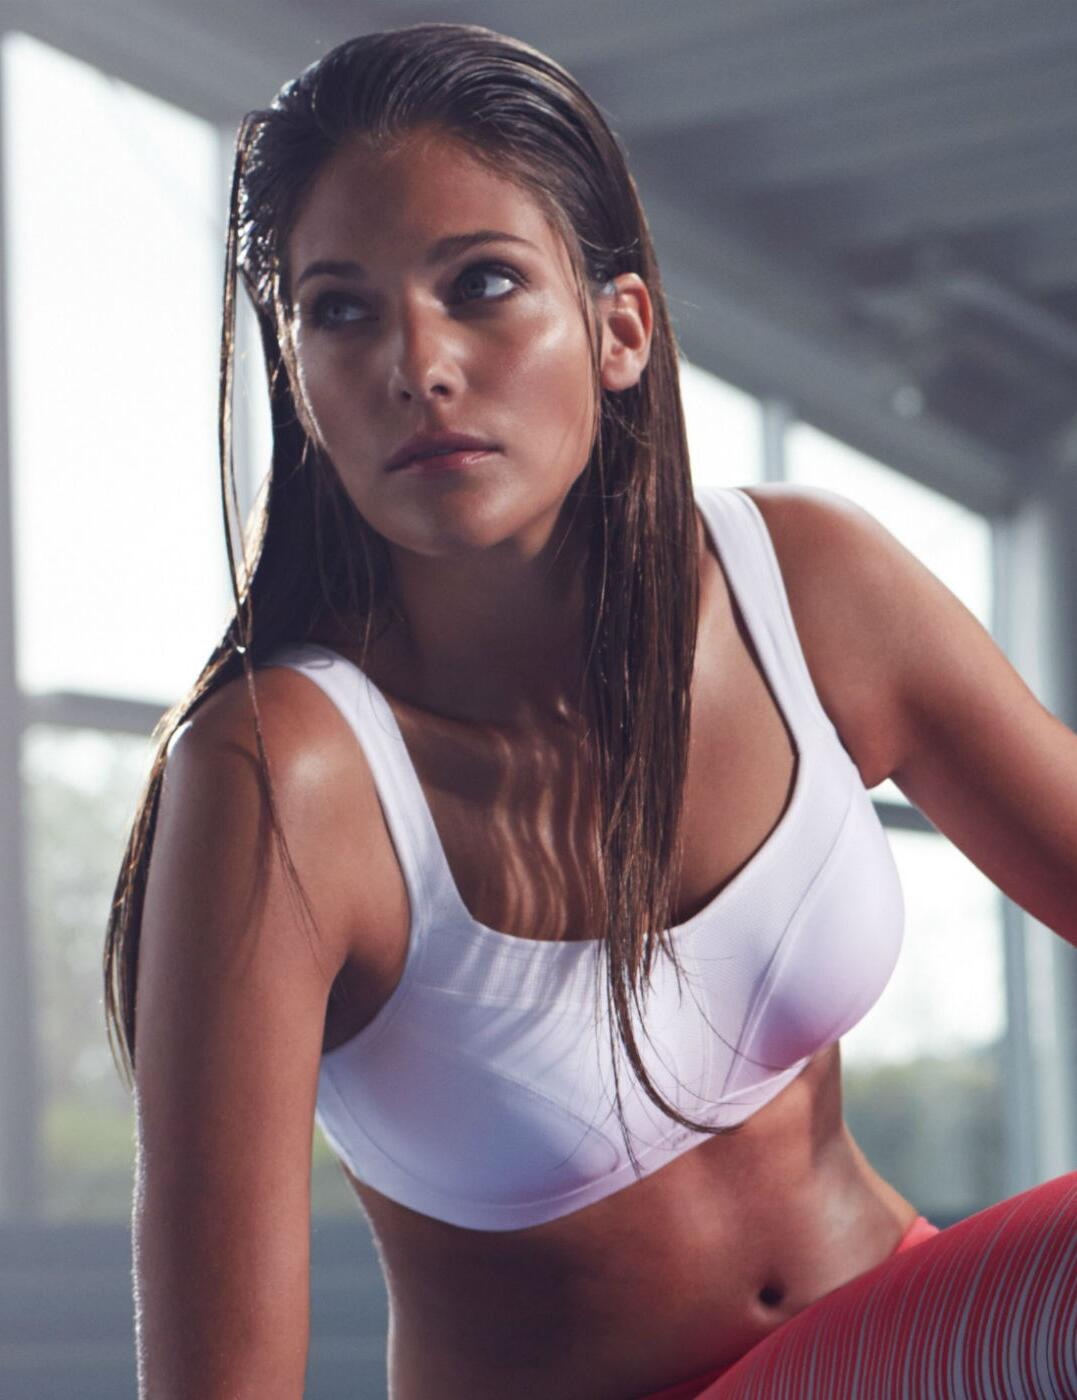 Panache-Sports-Bra-5021-Underwired-Moulded-Padded-High-Impact-Sports-Bra thumbnail 7